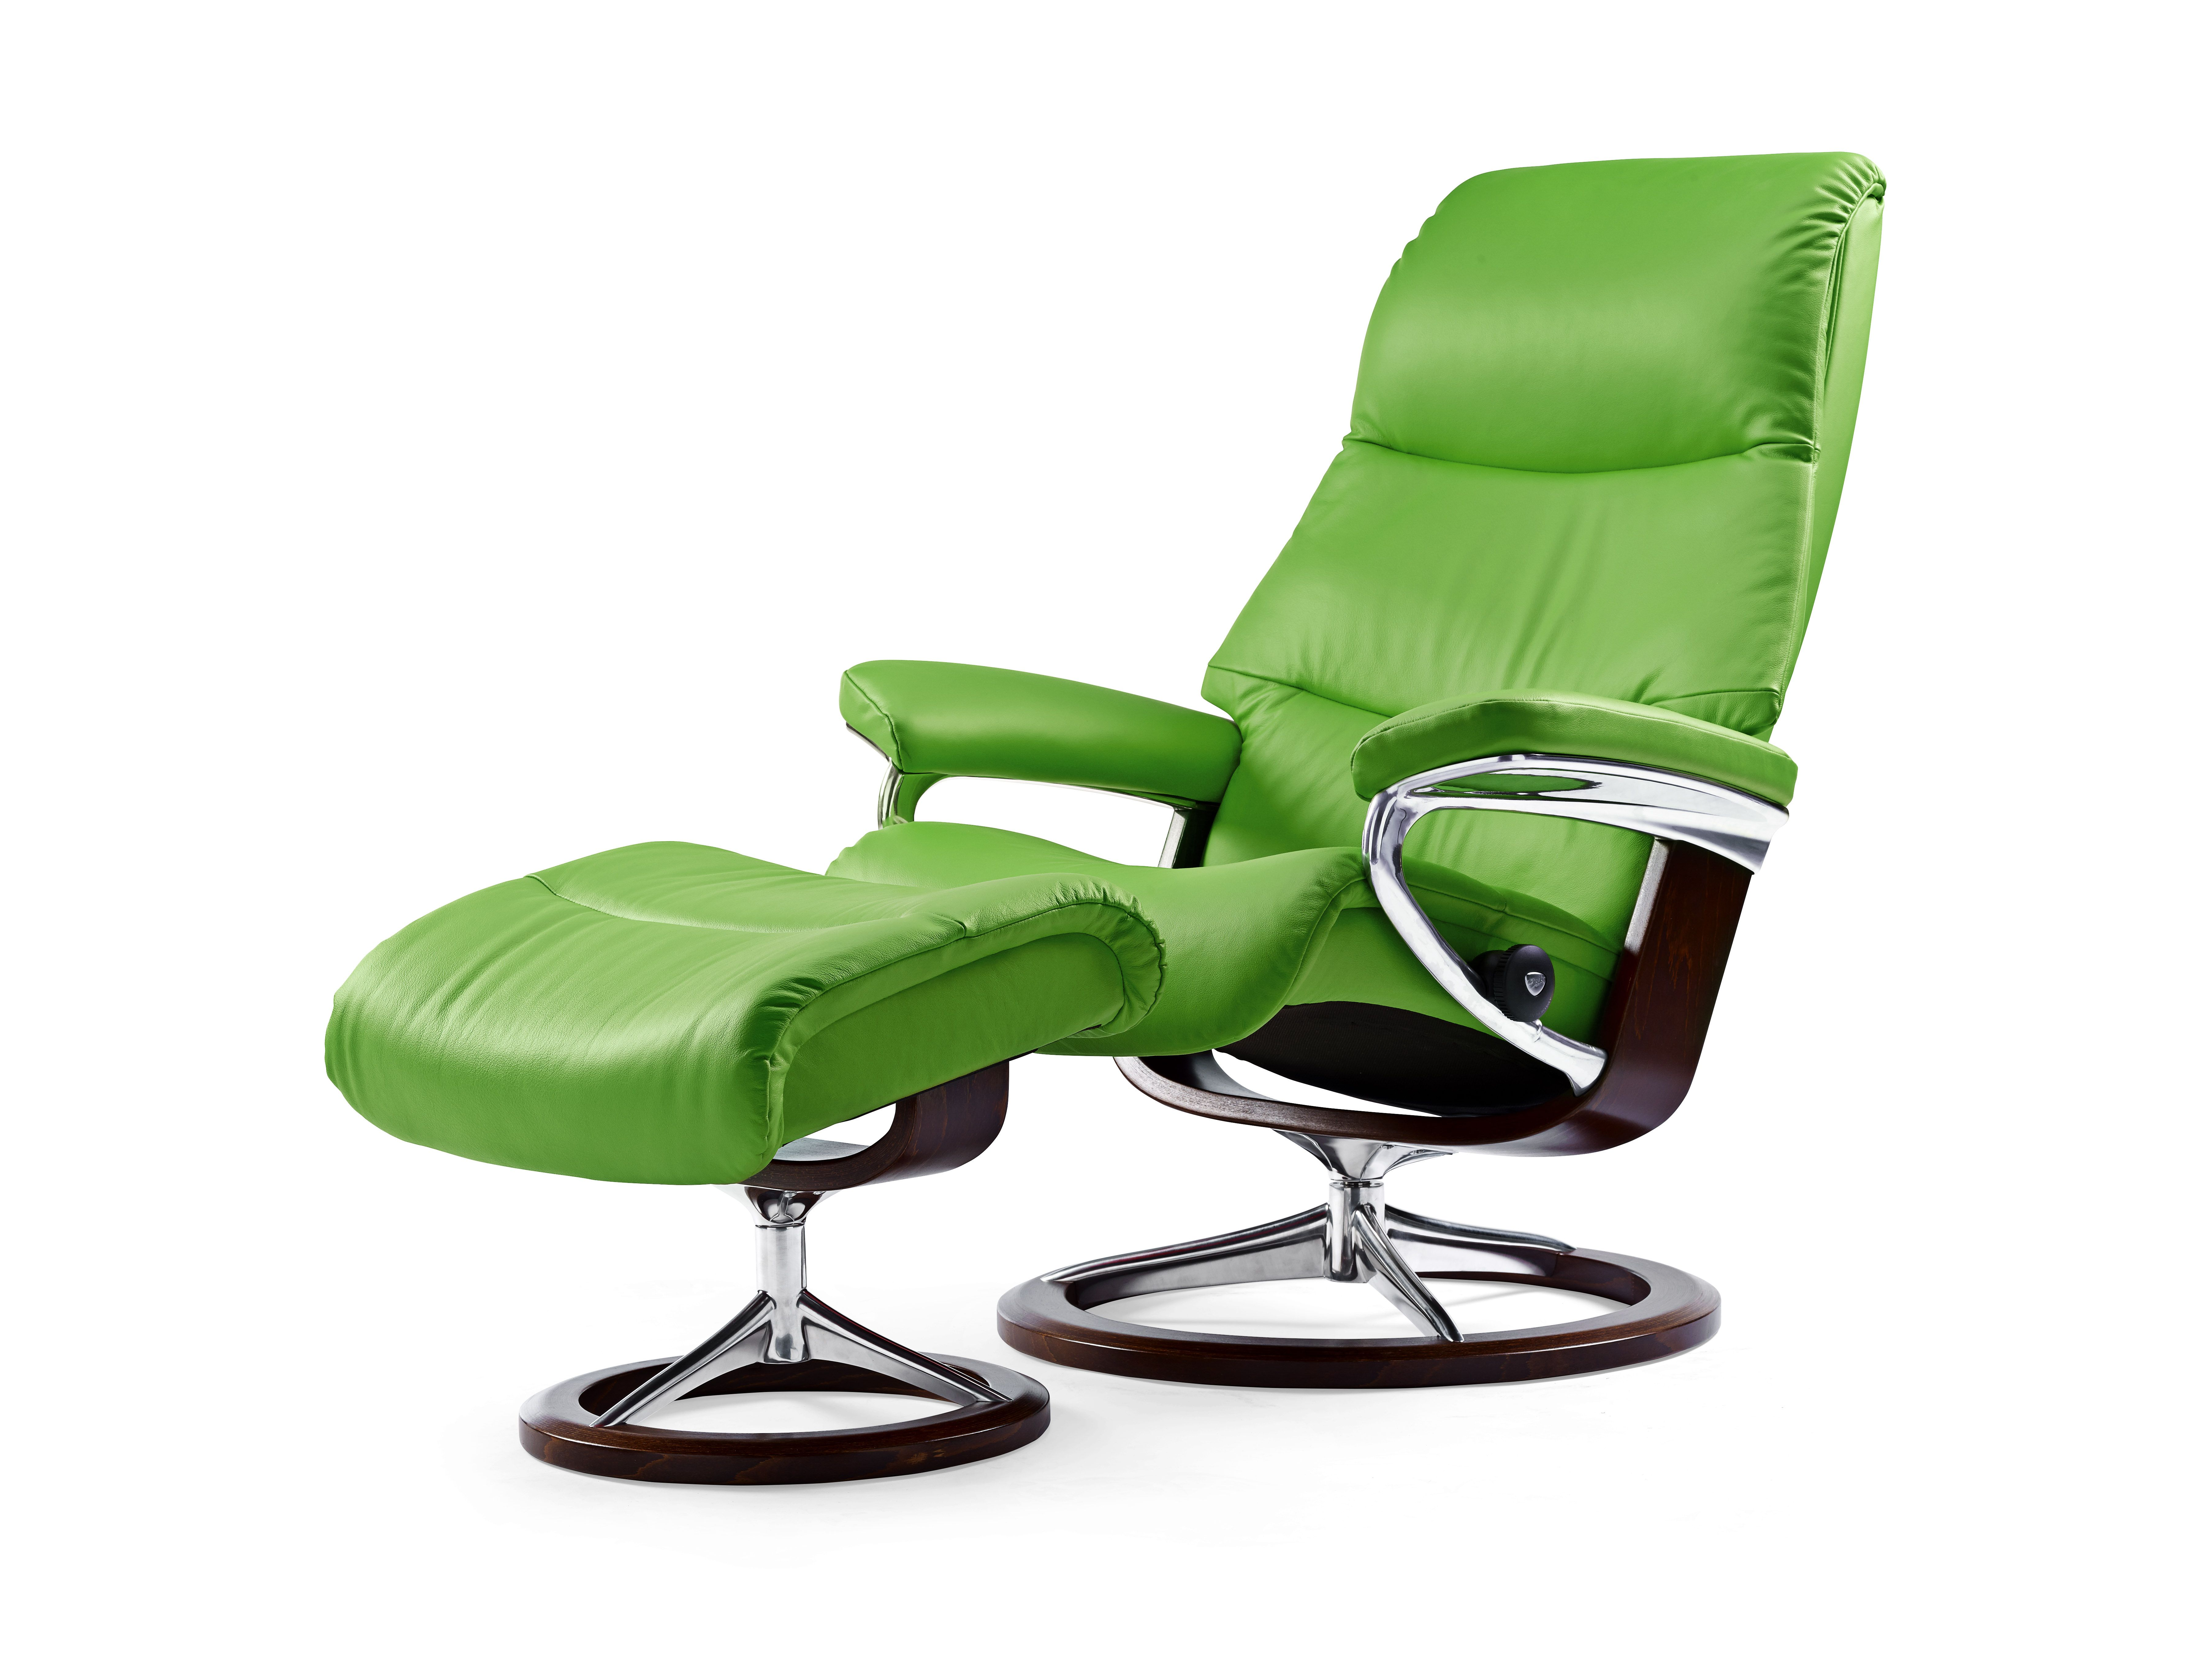 stressless view relaxsessel inkl hocker in der ausf hrung leder 39 paloma 39 summer green holz. Black Bedroom Furniture Sets. Home Design Ideas